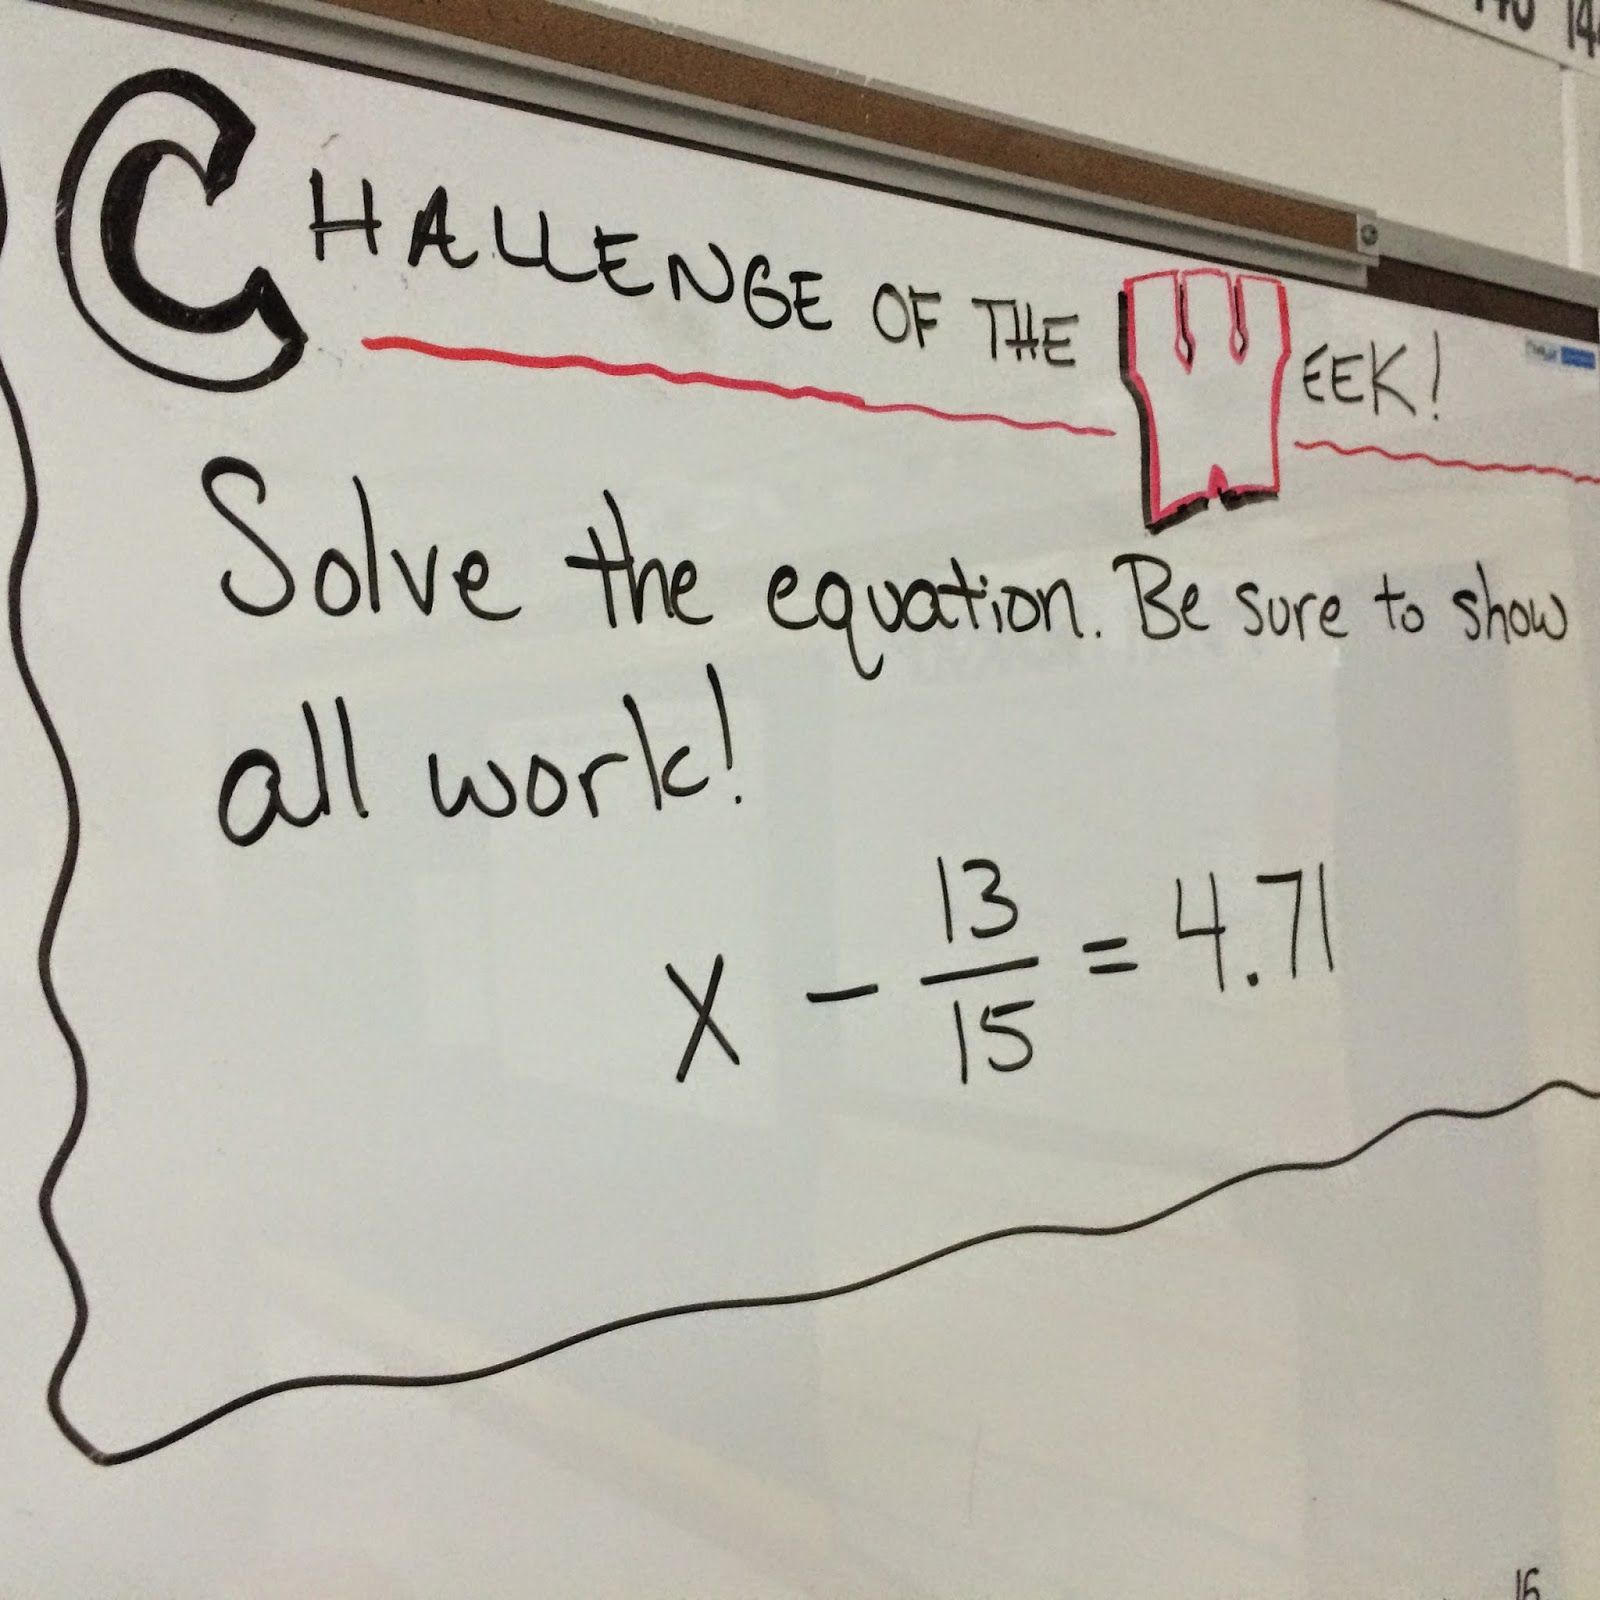 Challenge of the Week | School | Math challenge, Math ...